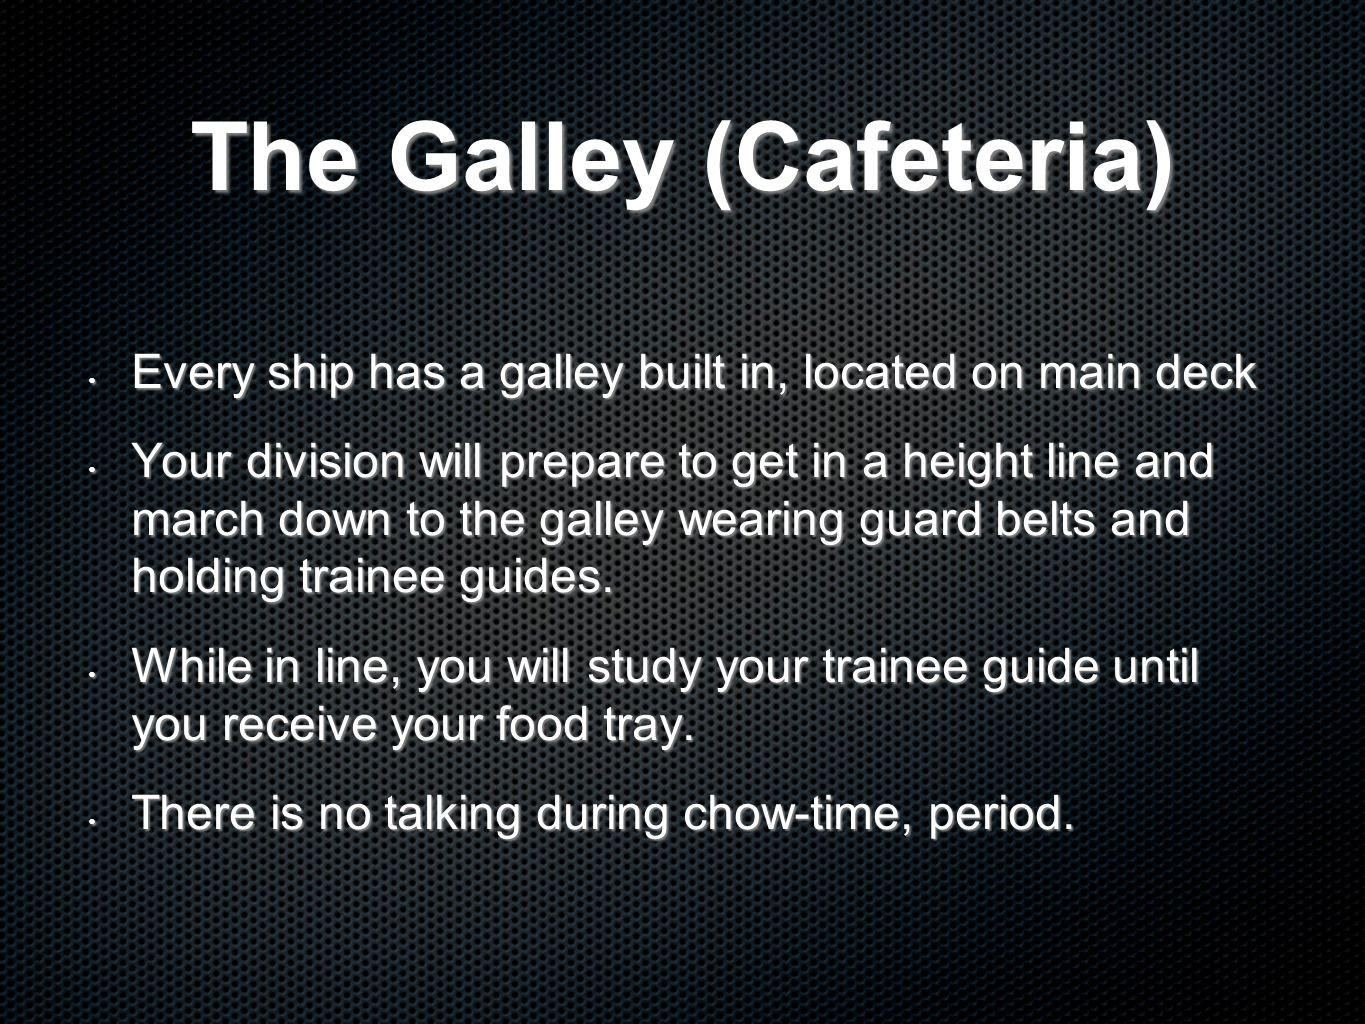 The Galley (Cafeteria) Every ship has a galley built in, located on main deck Every ship has a galley built in, located on main deck Your division will prepare to get in a height line and march down to the galley wearing guard belts and holding trainee guides.